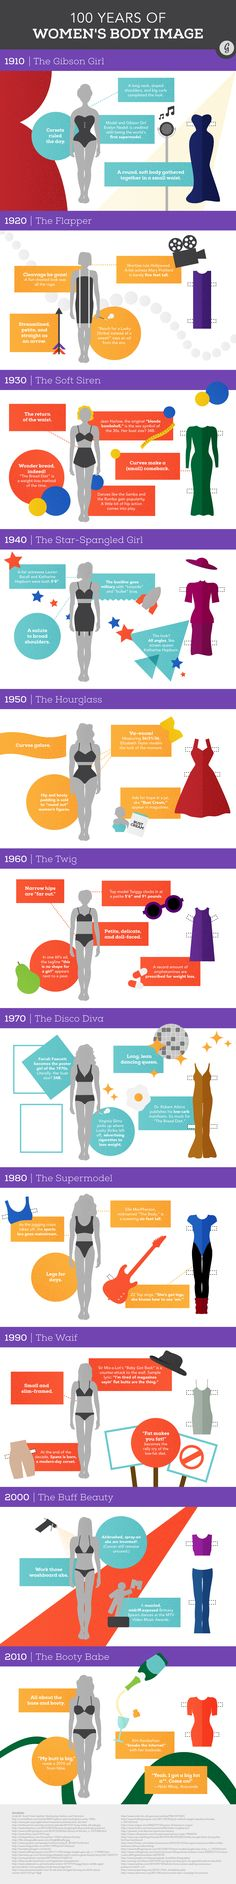 100 Years of Women's Body Image #bodyimage #inspiration #womenshealth #greatist